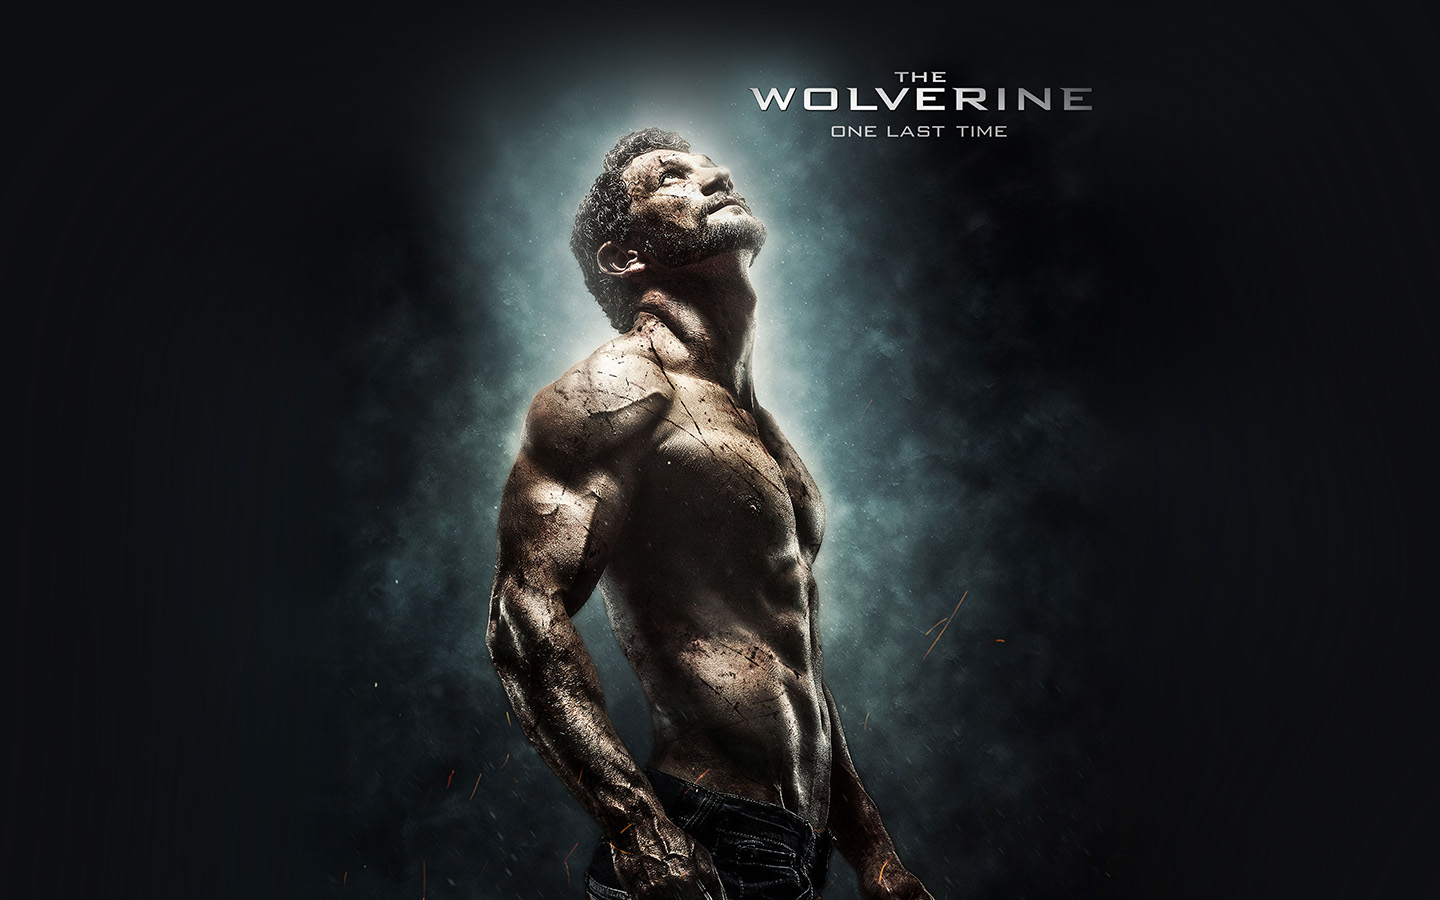 wolverine essays The conclusion to the wolverine trilogy sees our rough beast slouching towards bethlehem not to be born, but to face his reckoning it is 2029 he essays a tenderness which the nigh-invulnerable wolverine rarely exhibits.